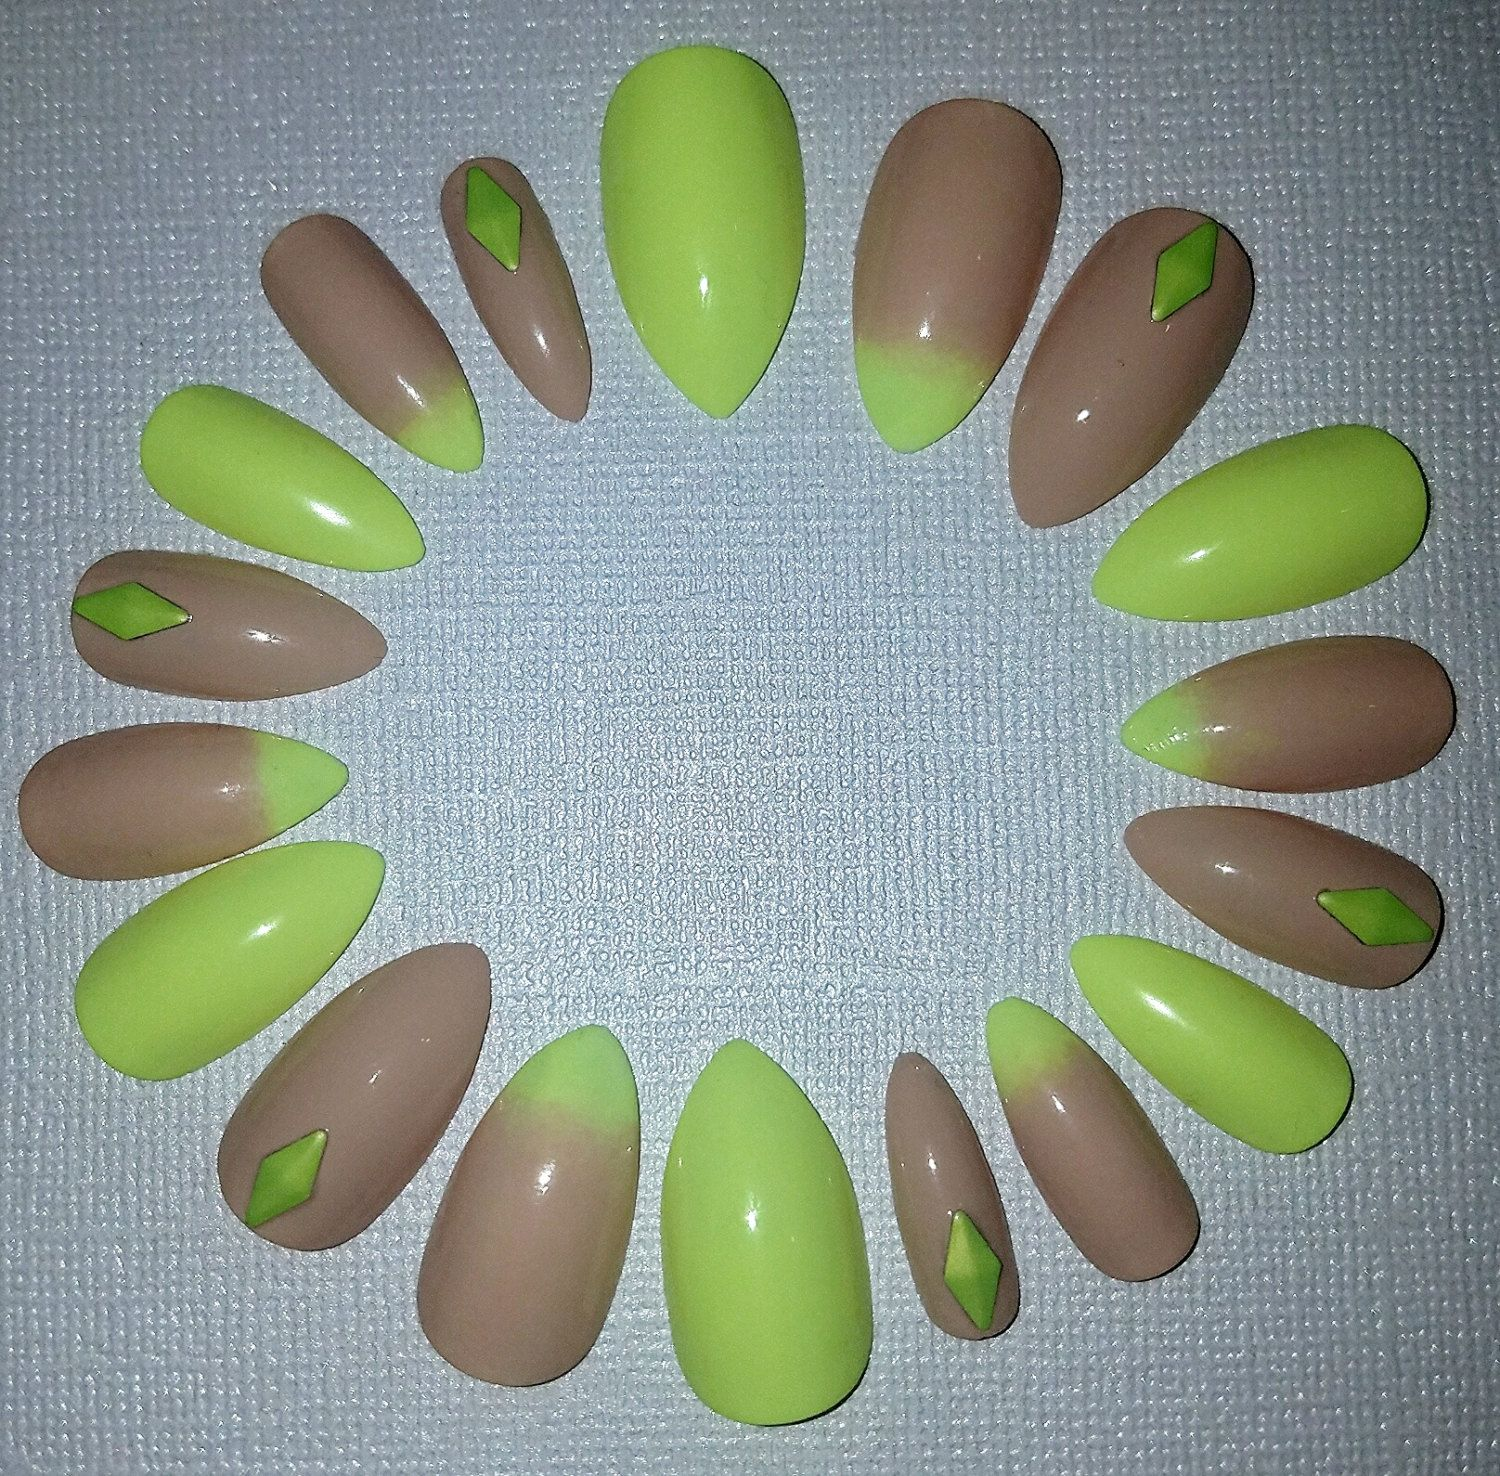 Nude and Neon Yellow Stiletto Nails- Press on Nails- Glue on Nails ...